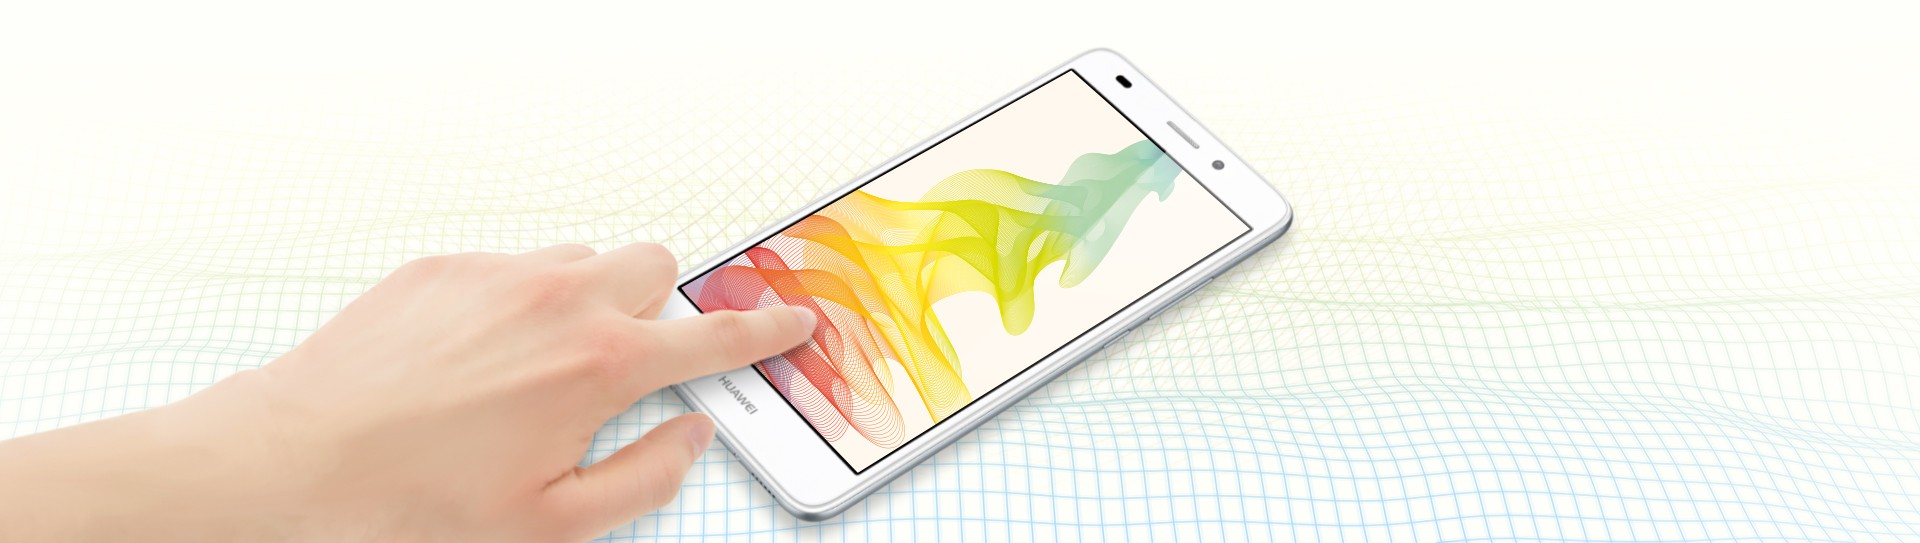 huawei gt3. this function is only available on the model of gt3 with fingerprint senor huawei gt3